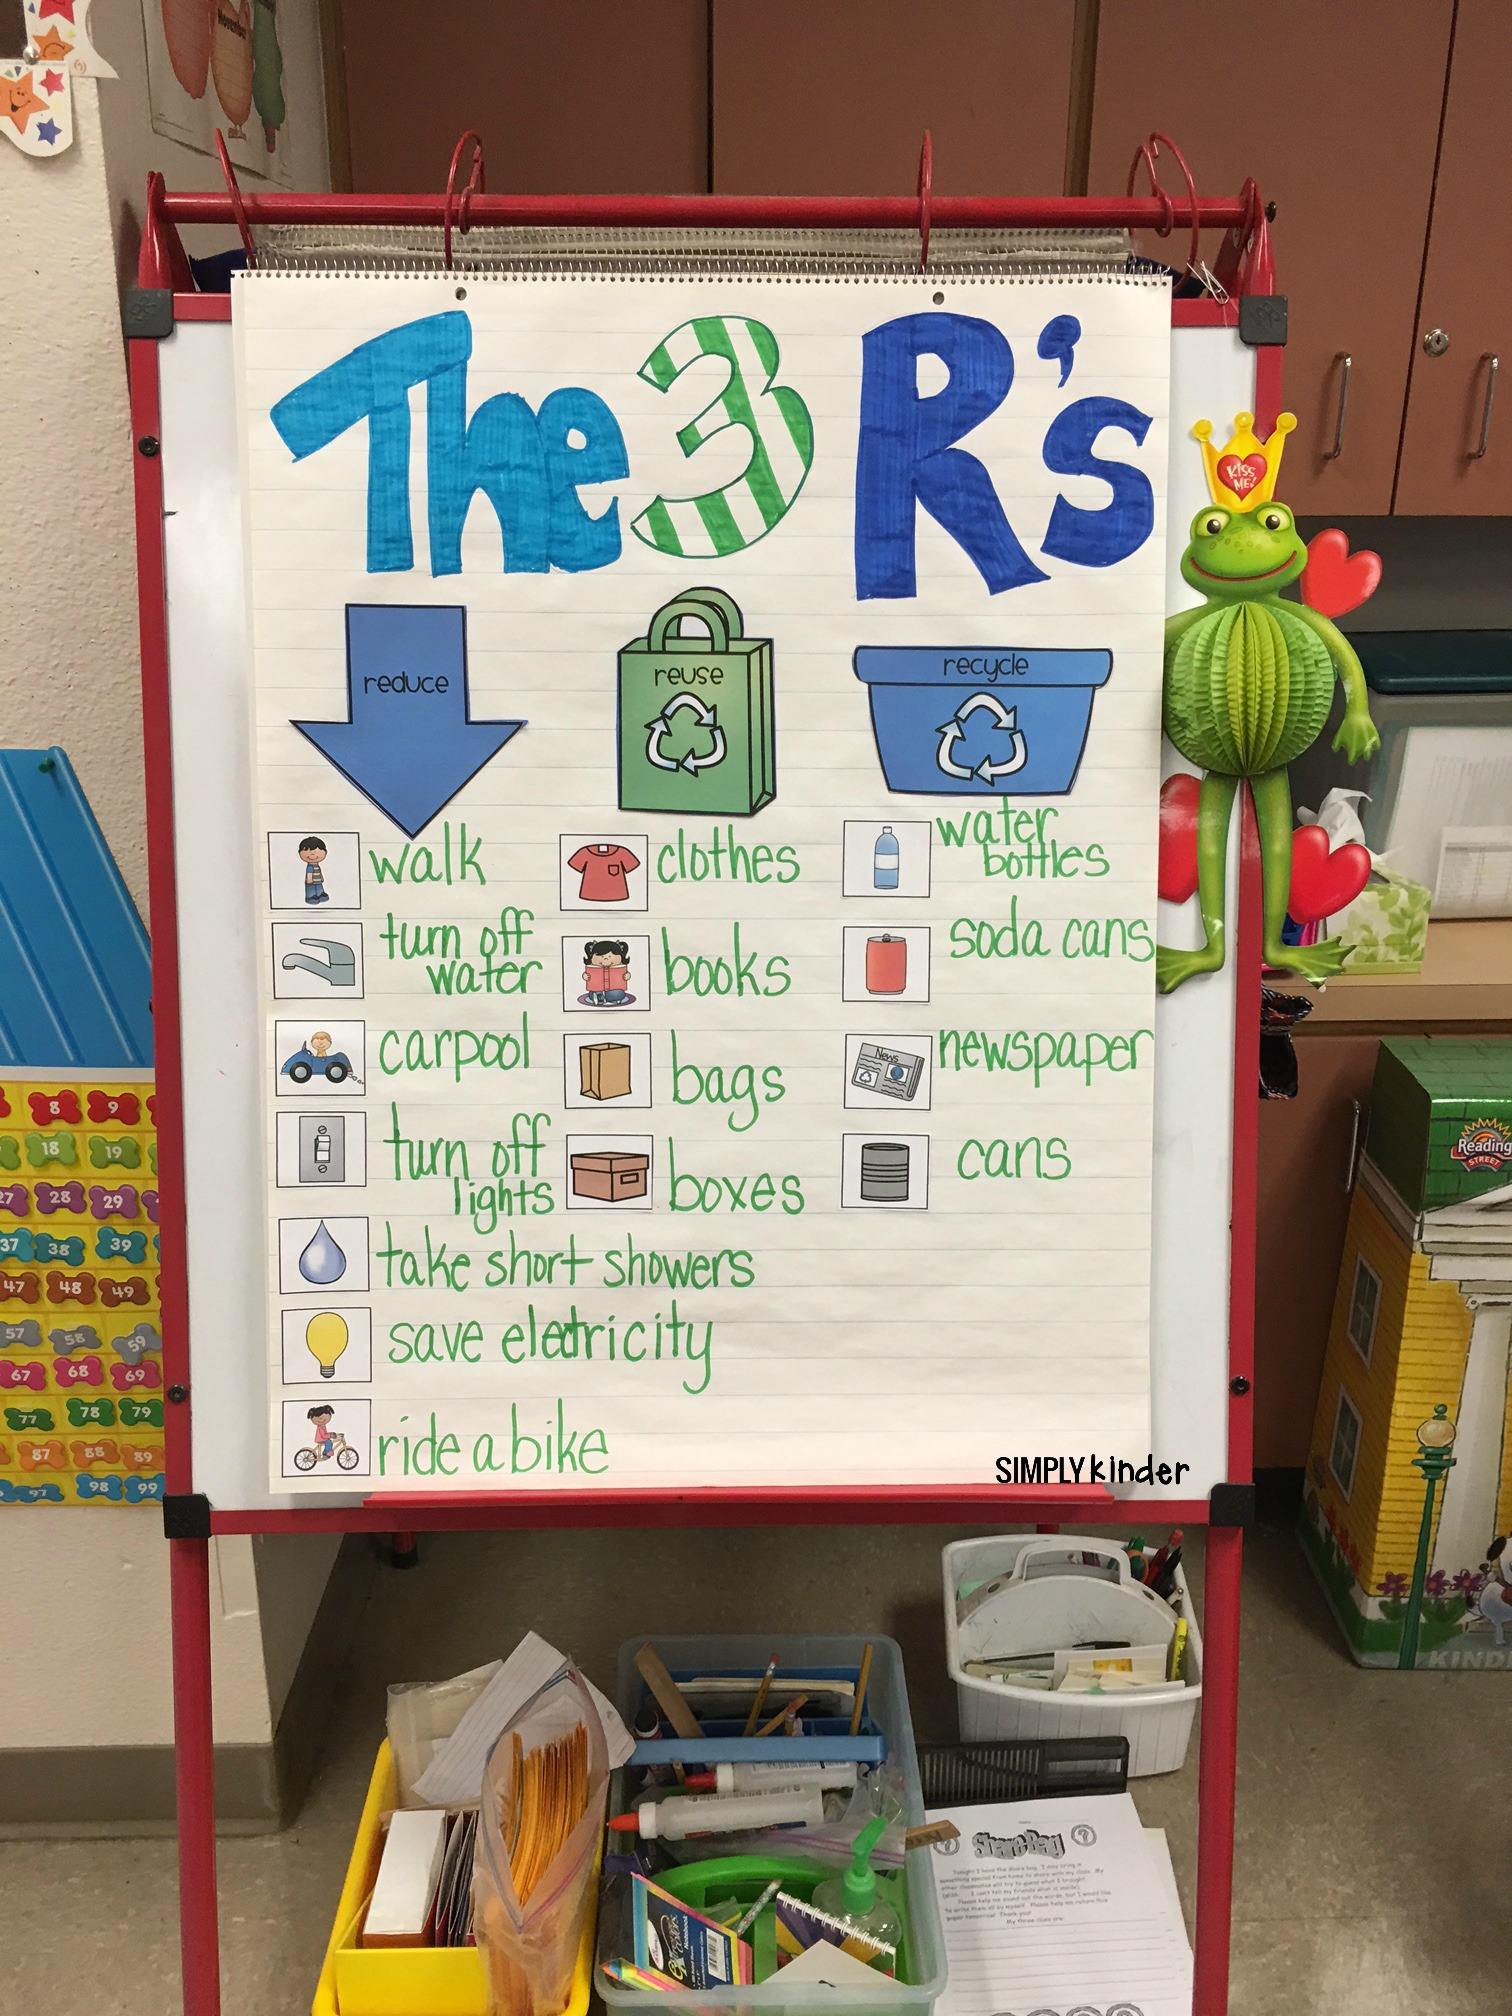 Free Recycling Sort - Simply Kinder - Free Printable Recycling Worksheets